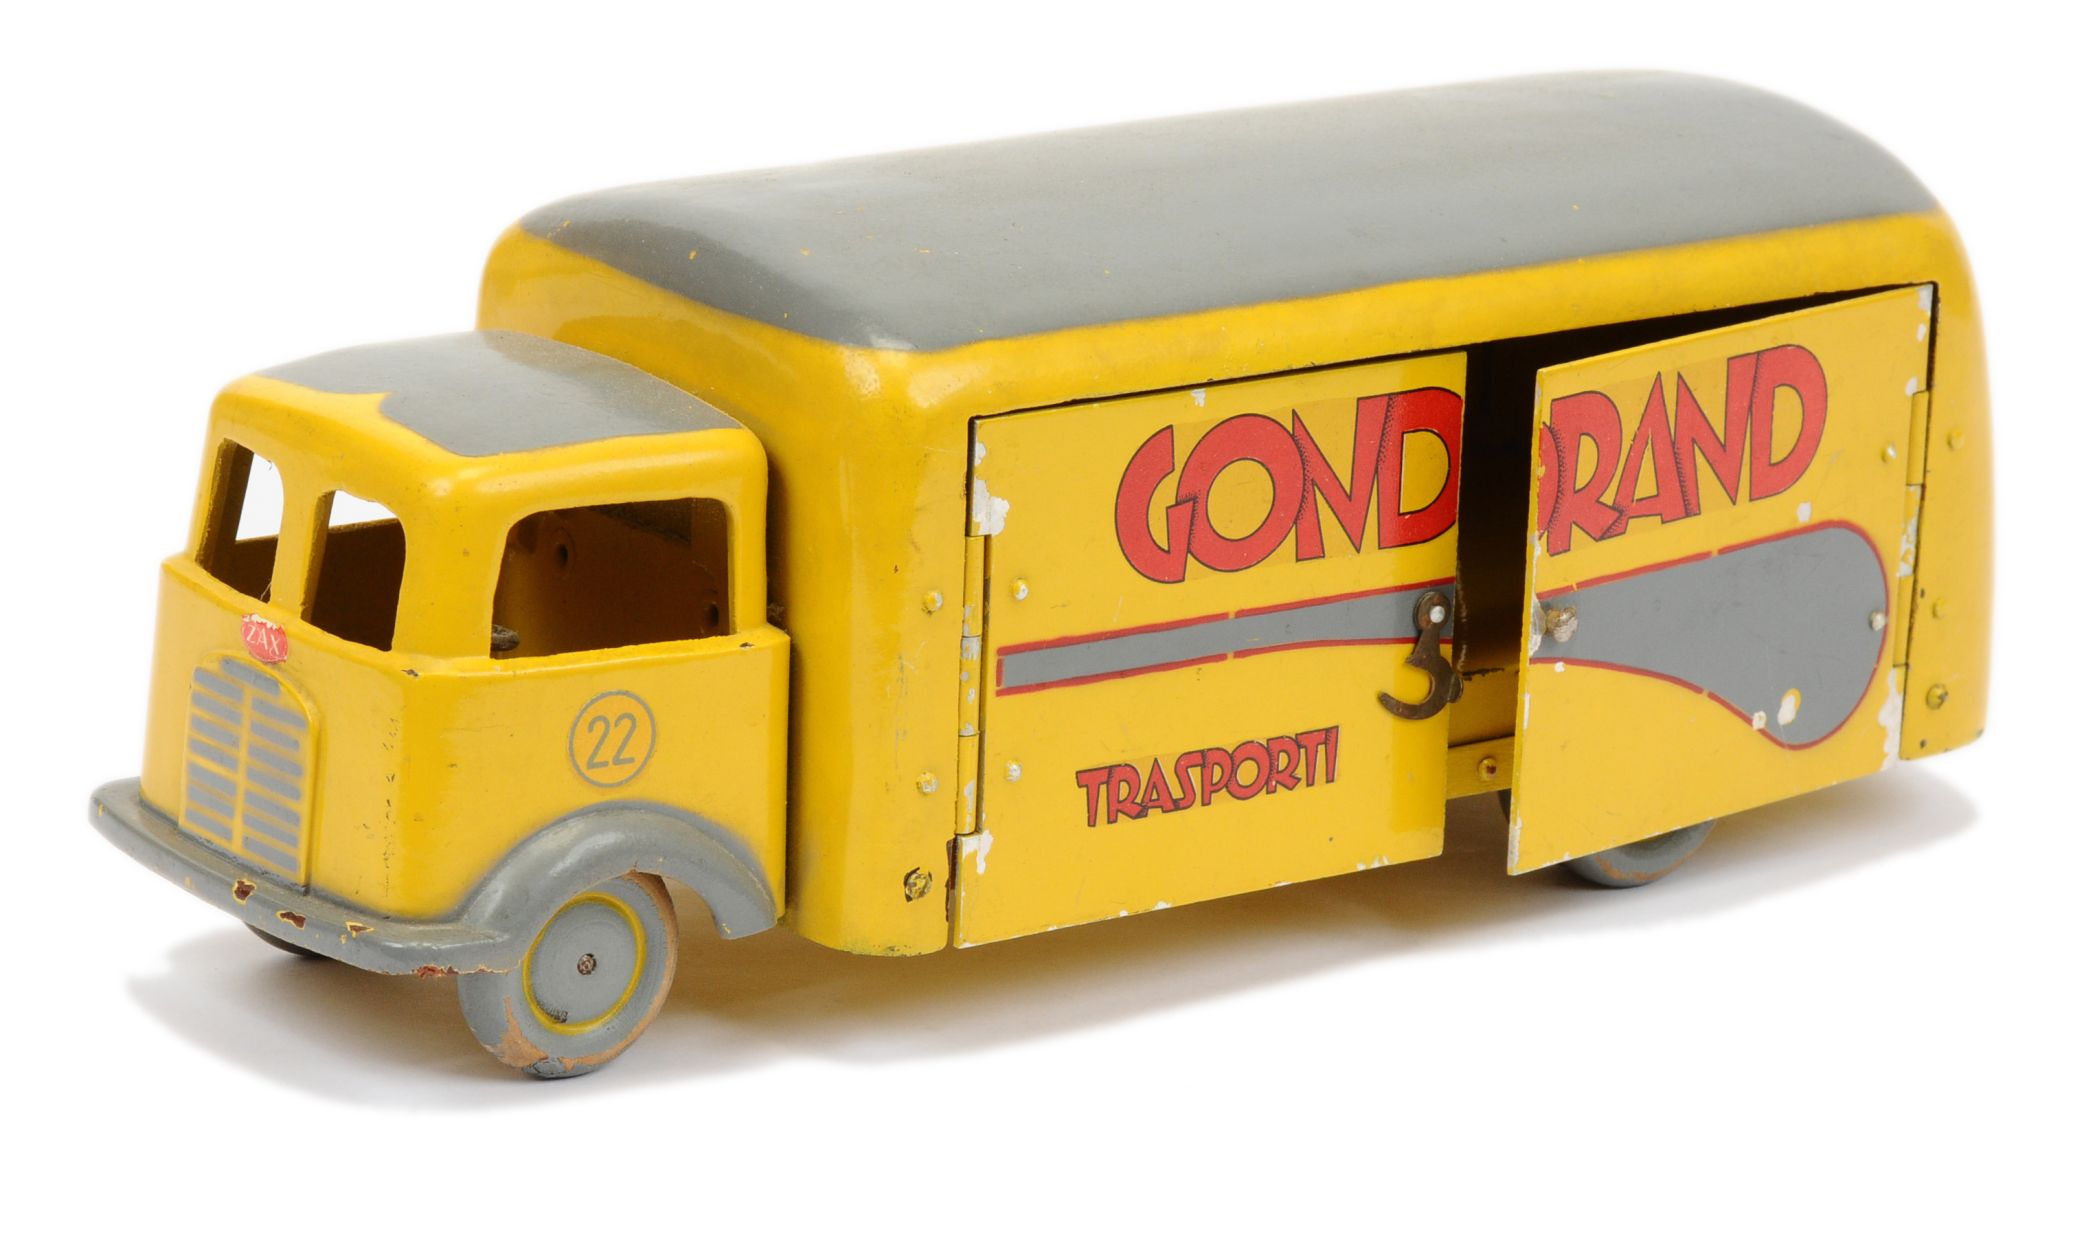 ZAX Toys (Bergamo Italy) Delivery Van GONDRAND 15th January 2020 Lot 657